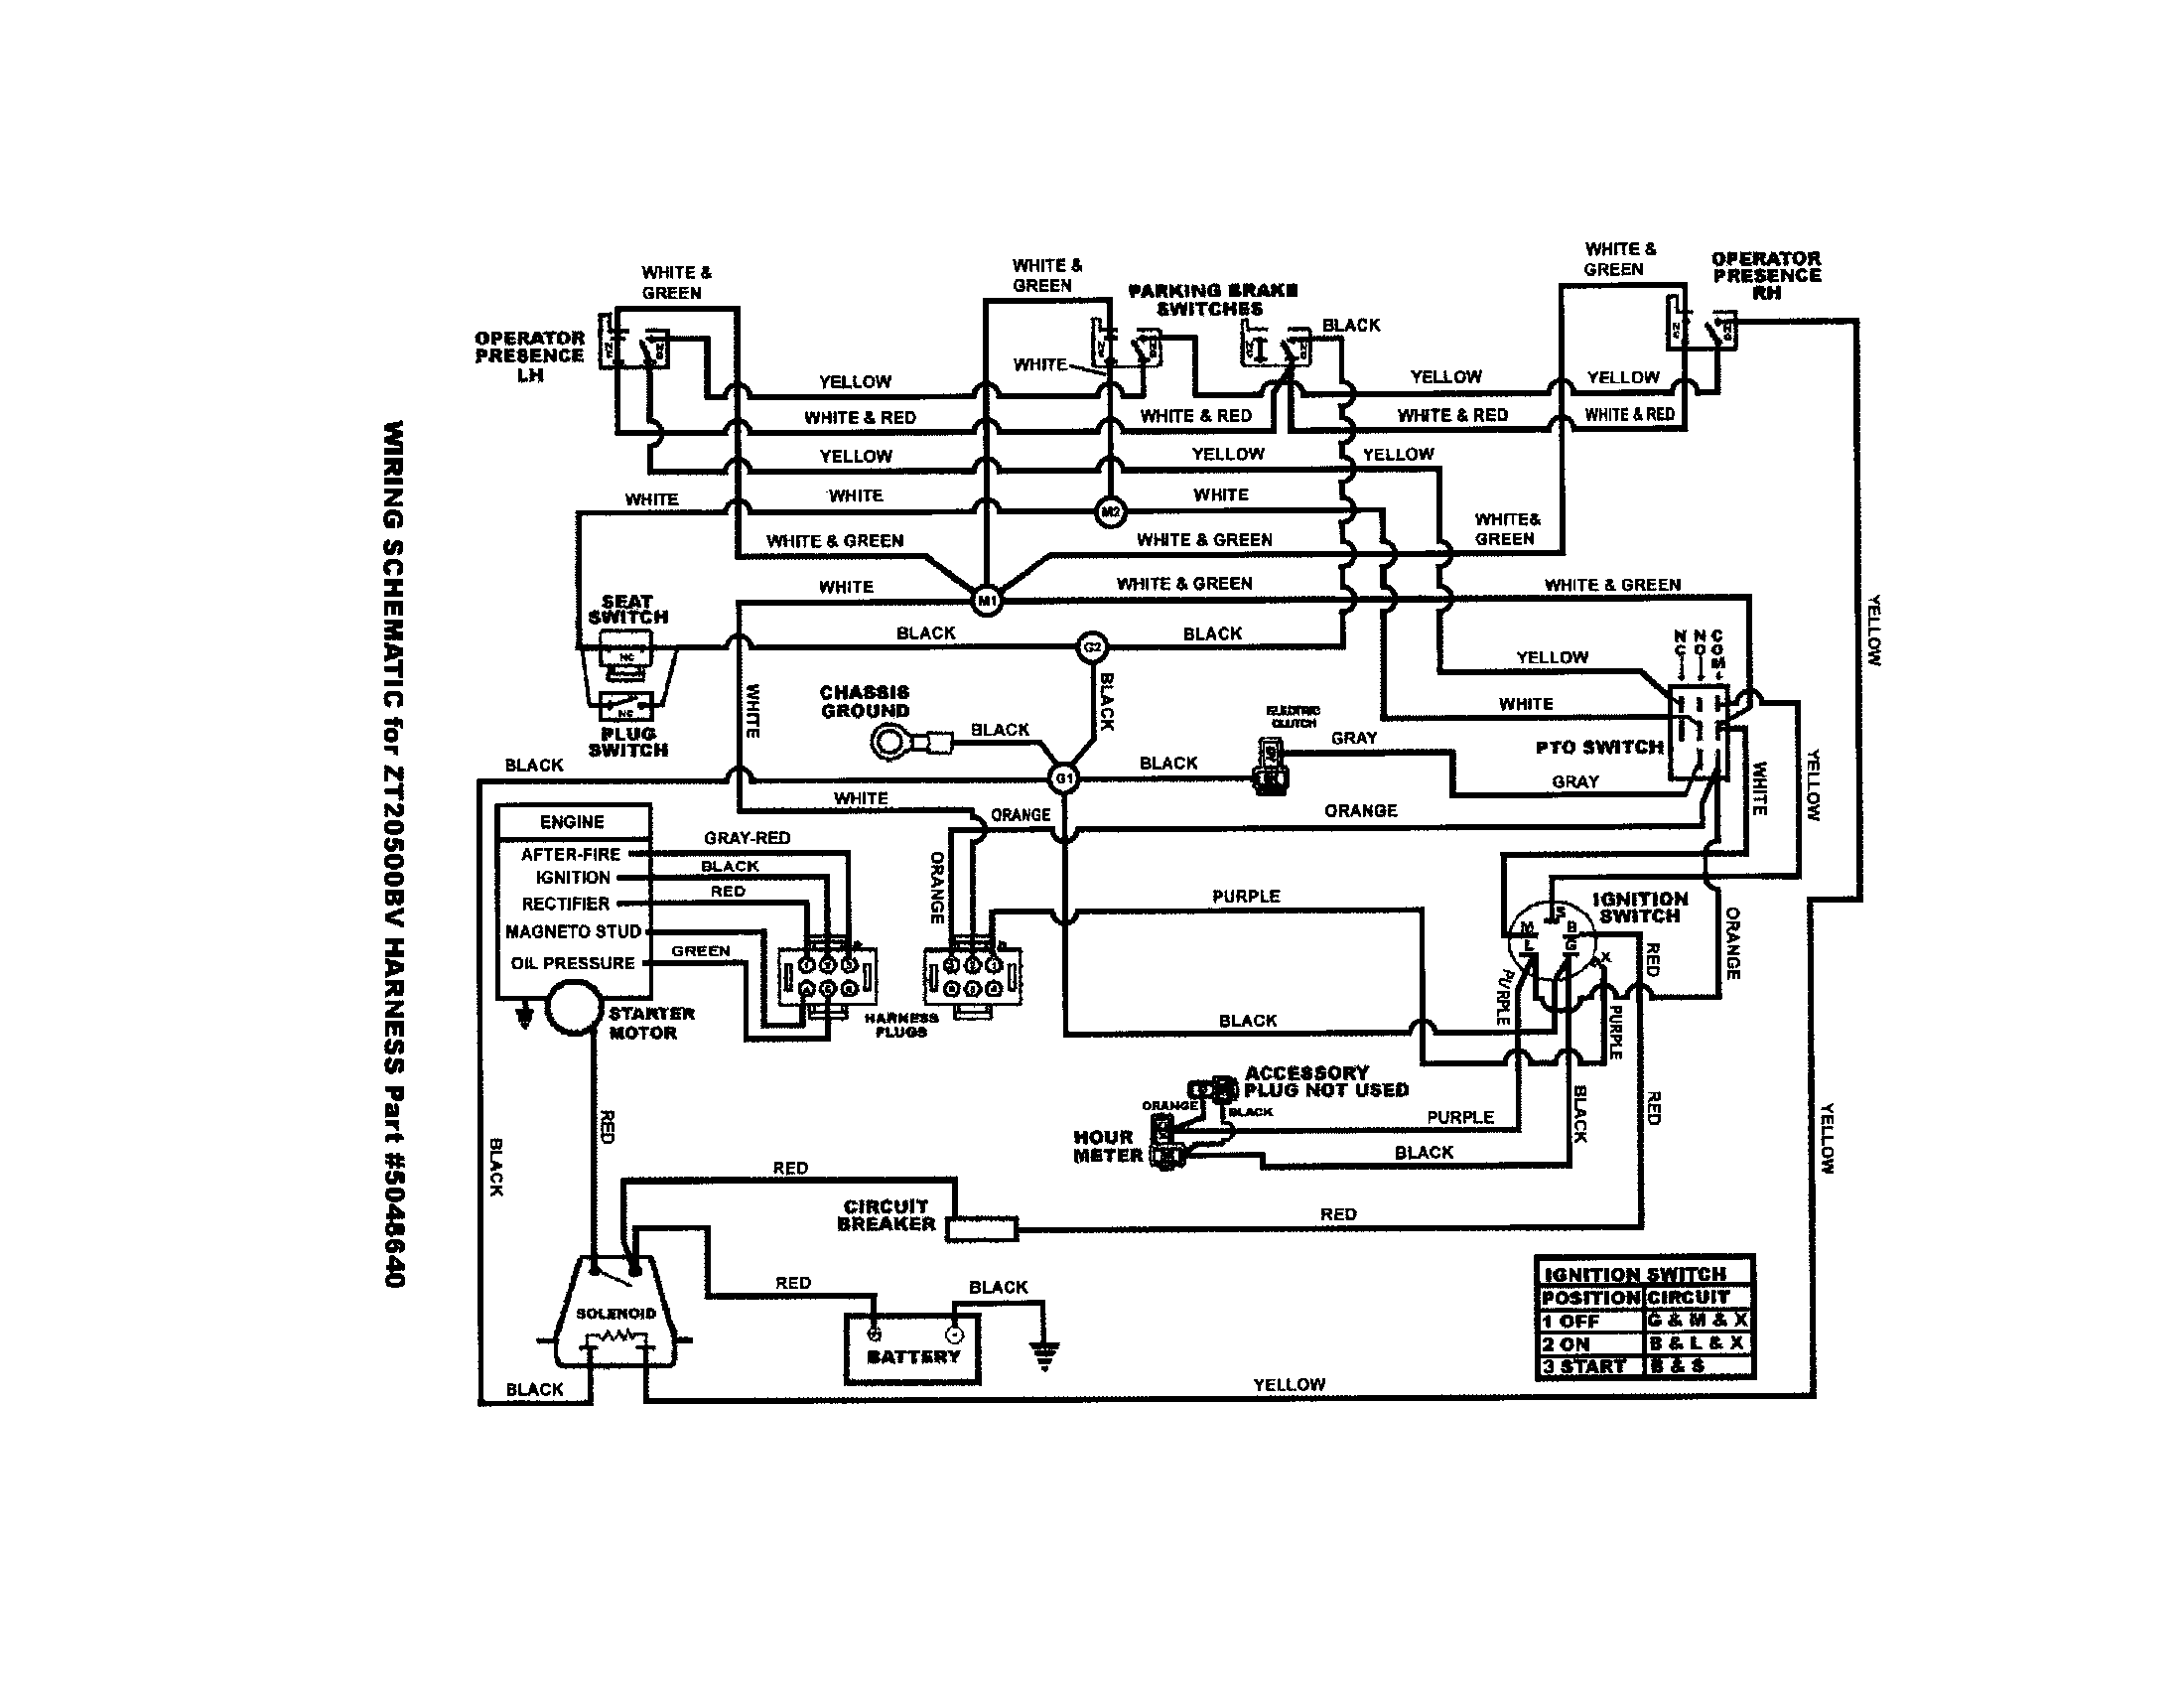 Kohler 20 Hp Wiring Diagram on sears headlight wiring diagram